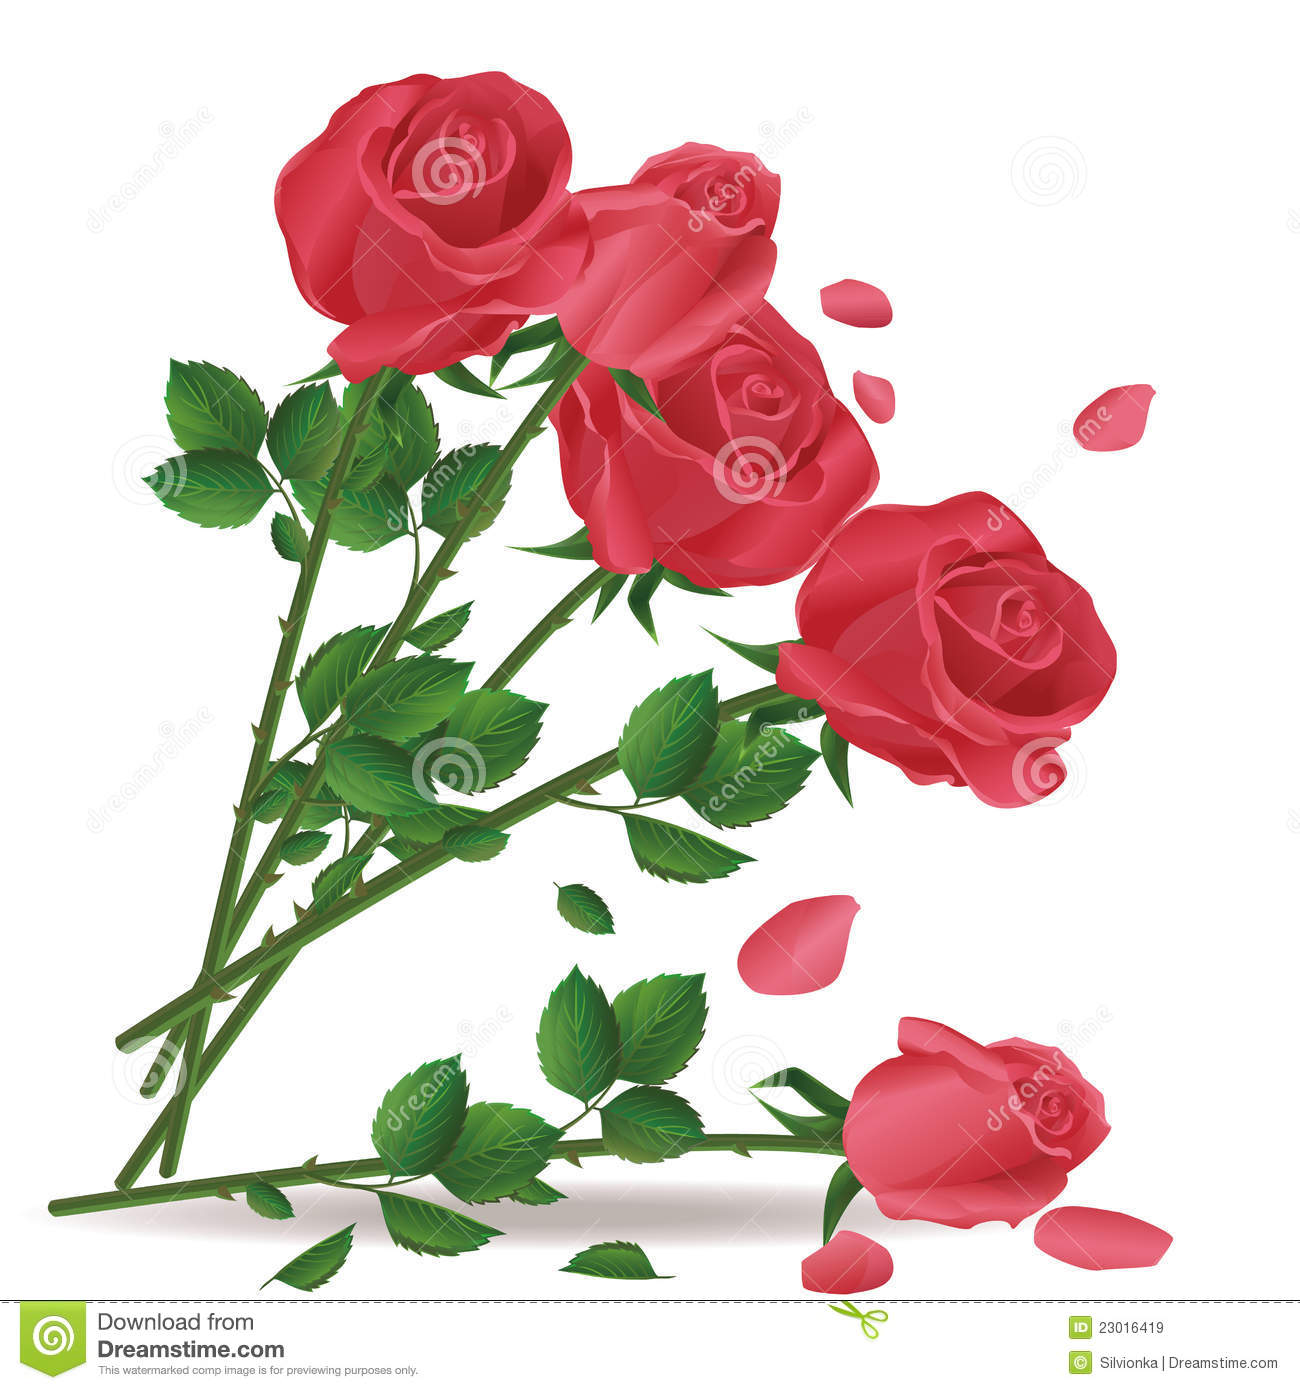 Download Falling Bouquet Of Red Roses Stock Vector - Illustration of harmony, design: 23016419